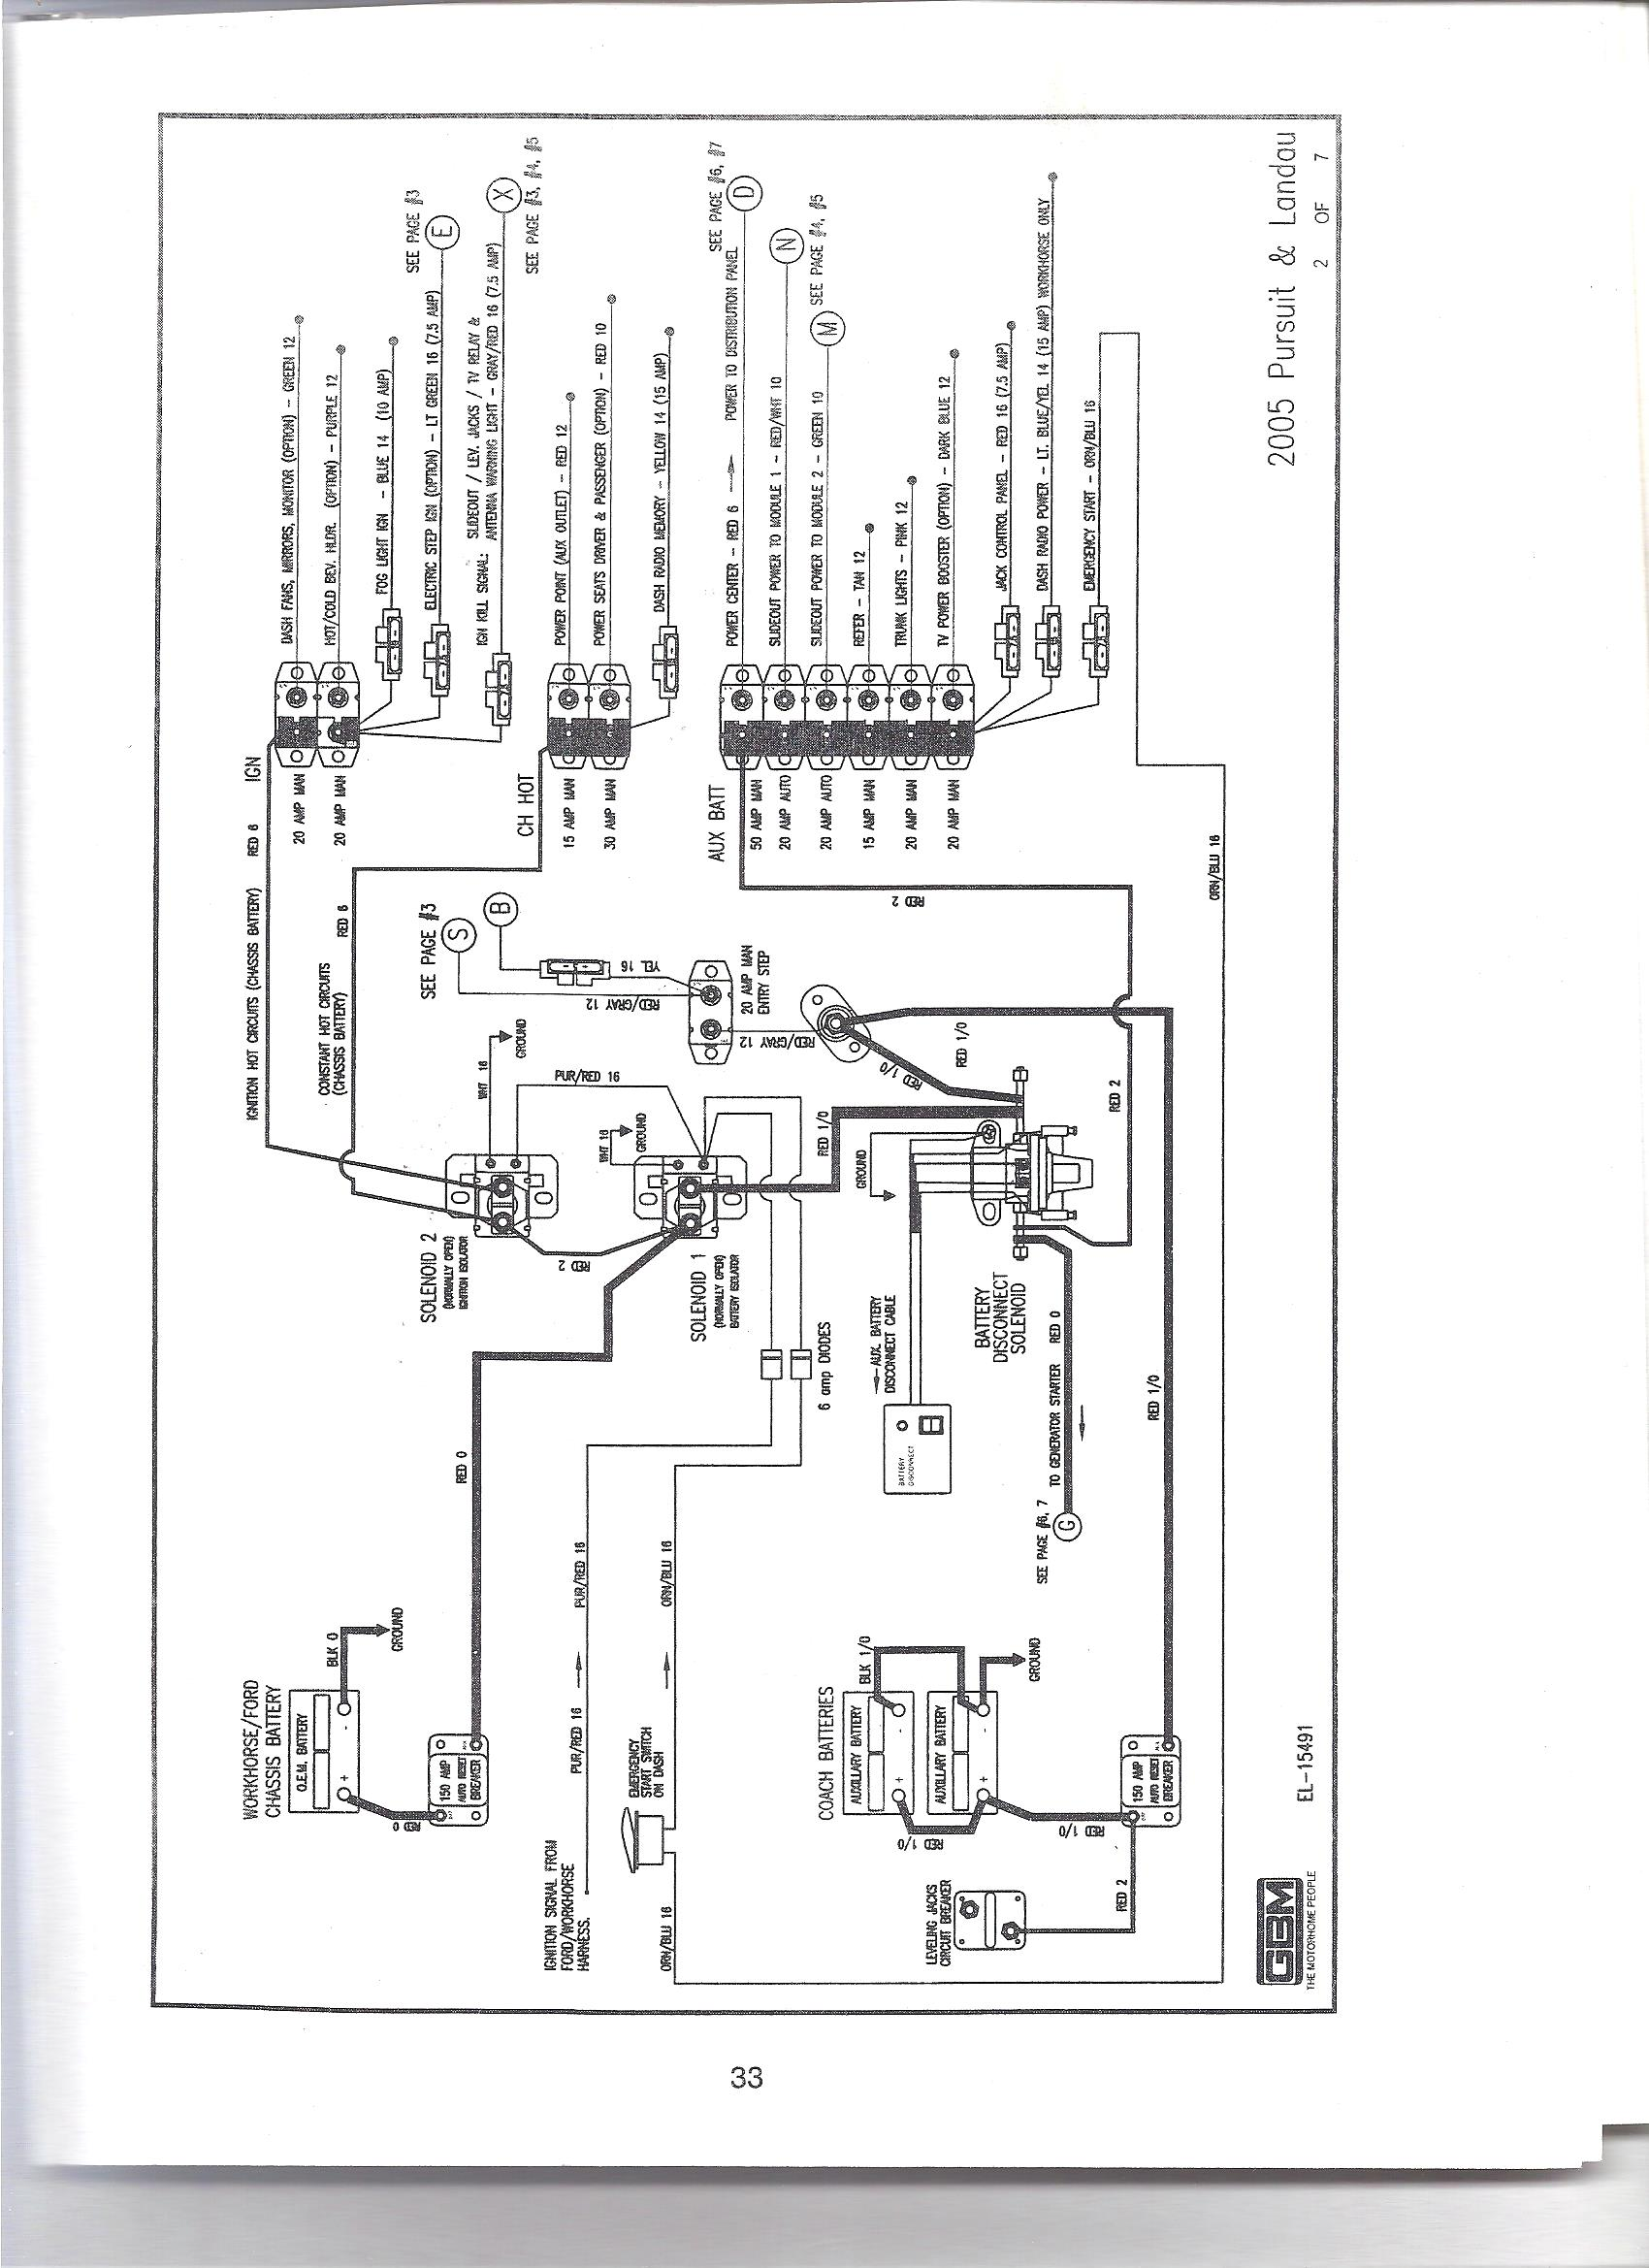 i have a 2004 georgie boy landau 34.5 ft class a rv with 2 ... rv ac wiring diagram #12